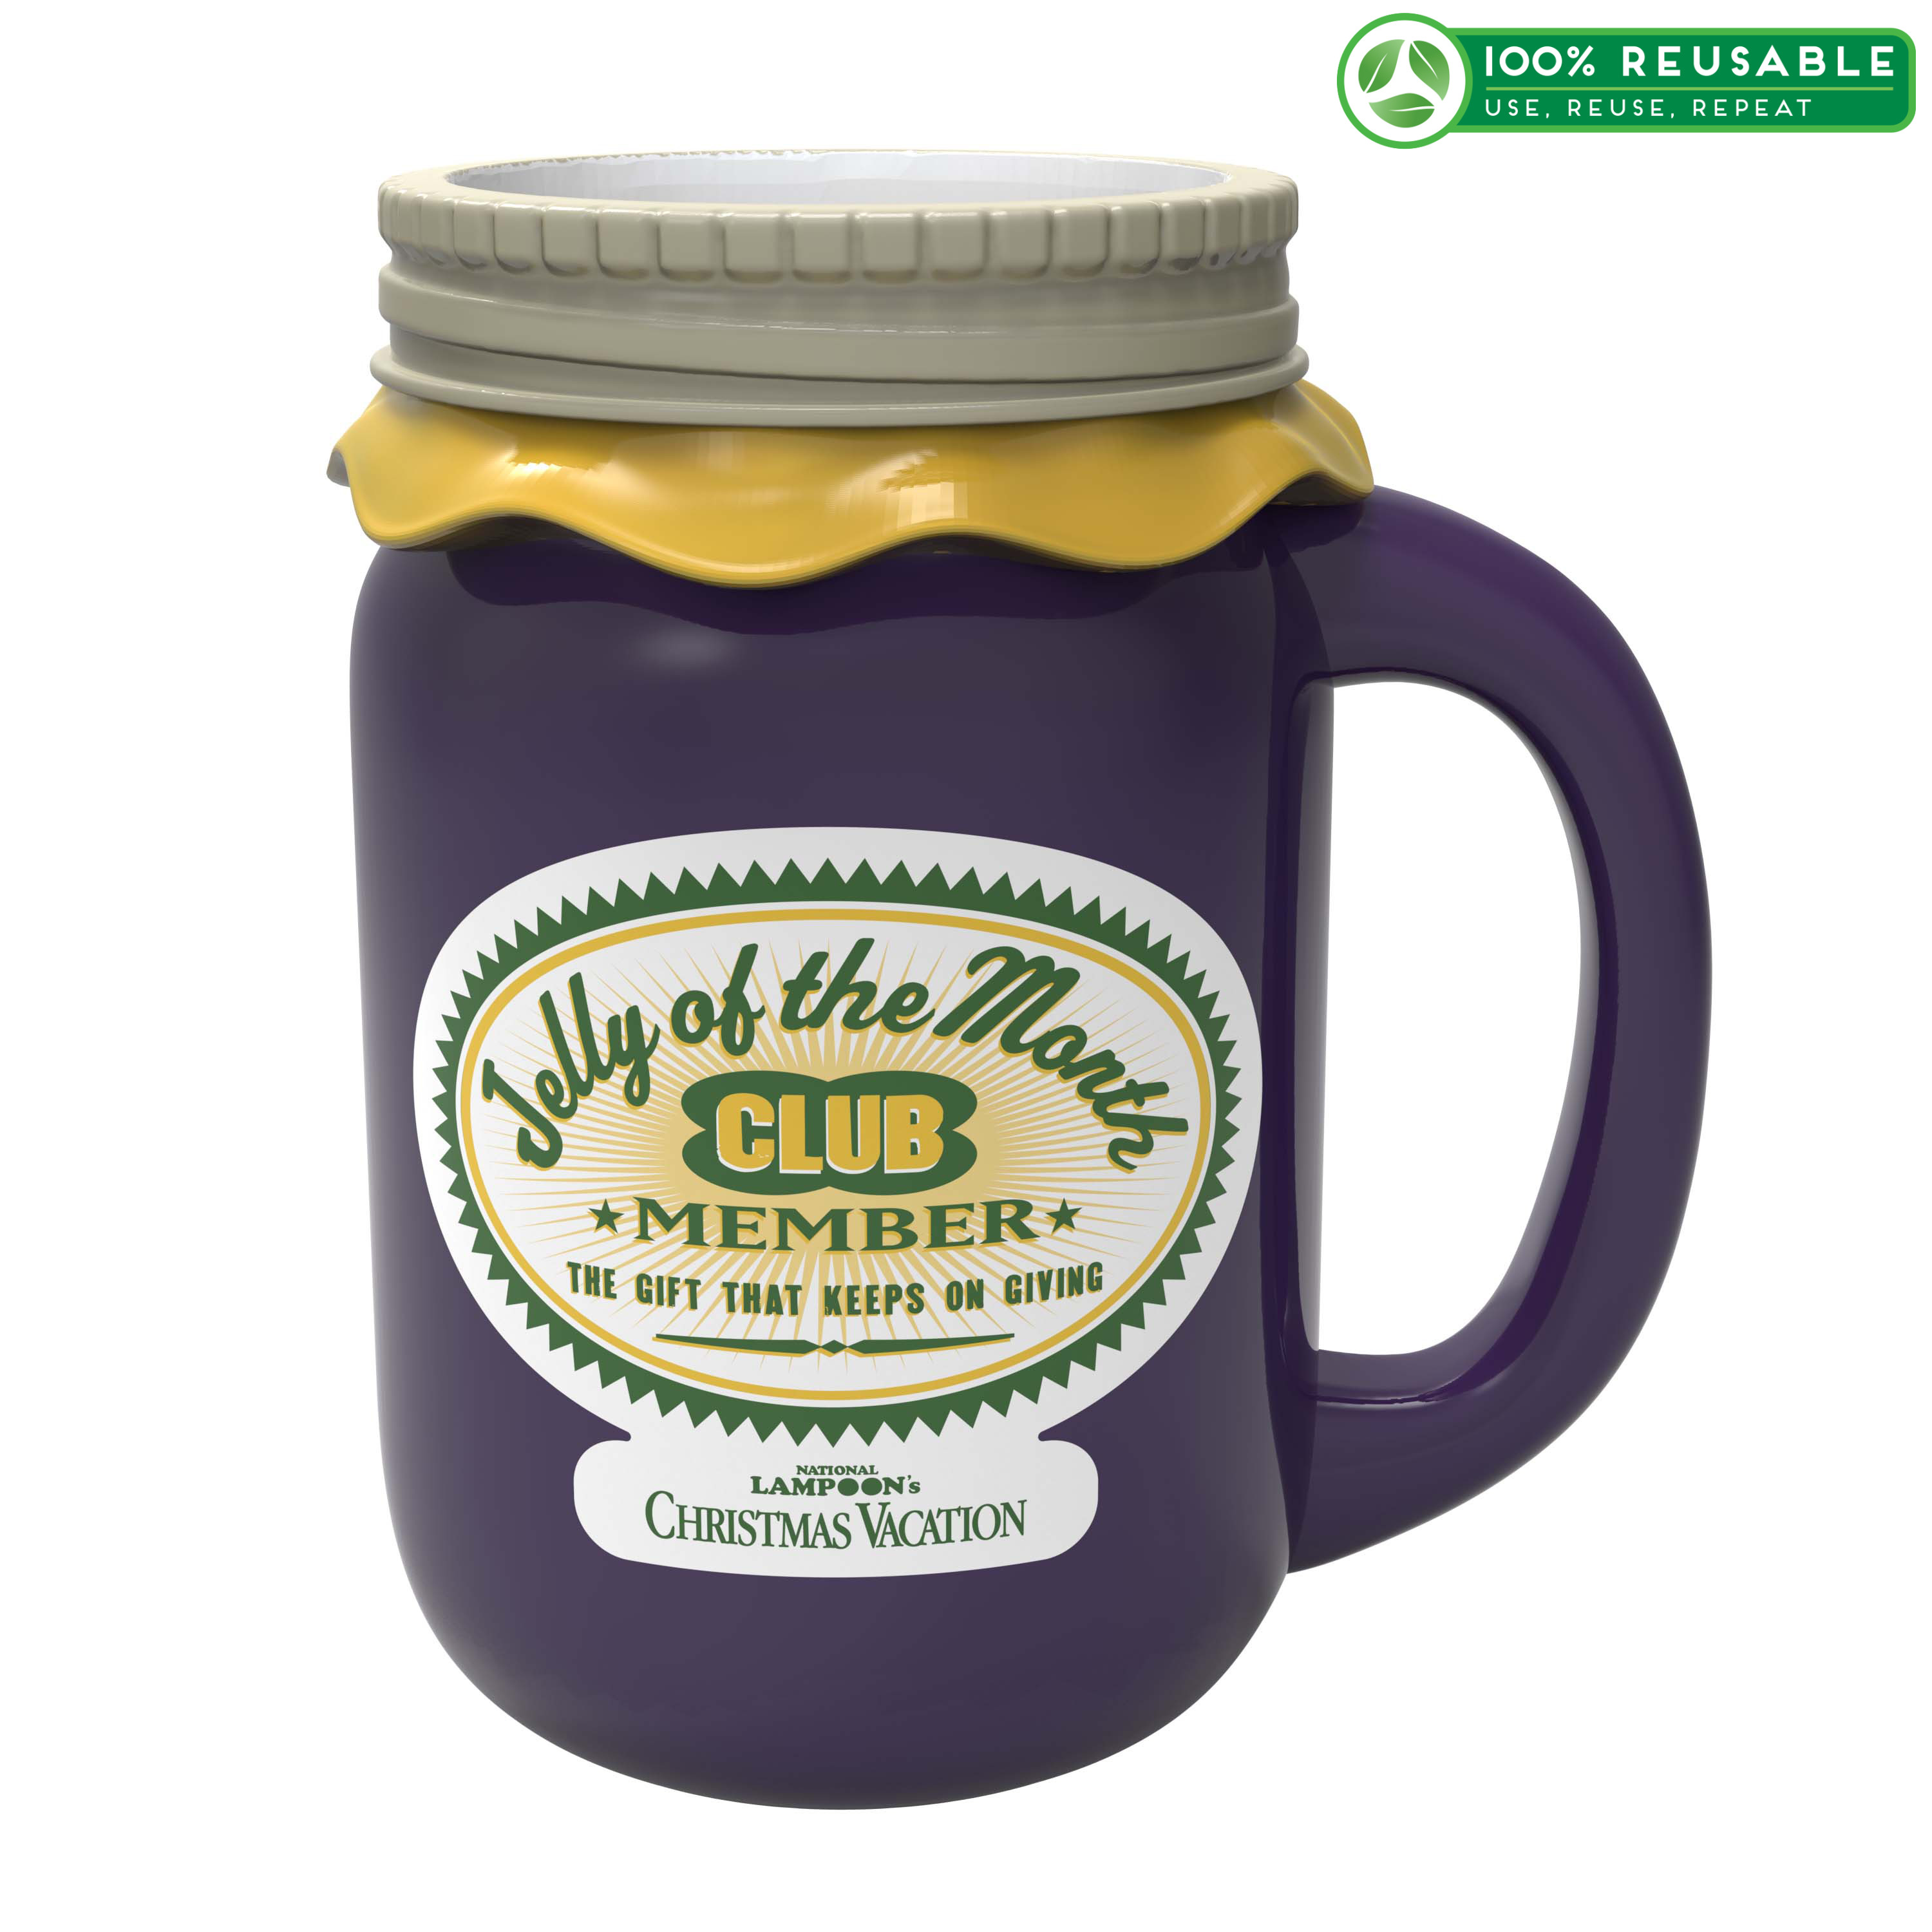 National Lampoon 10 ounce Coffee Mug, Jelly of the Month Club slideshow image 1